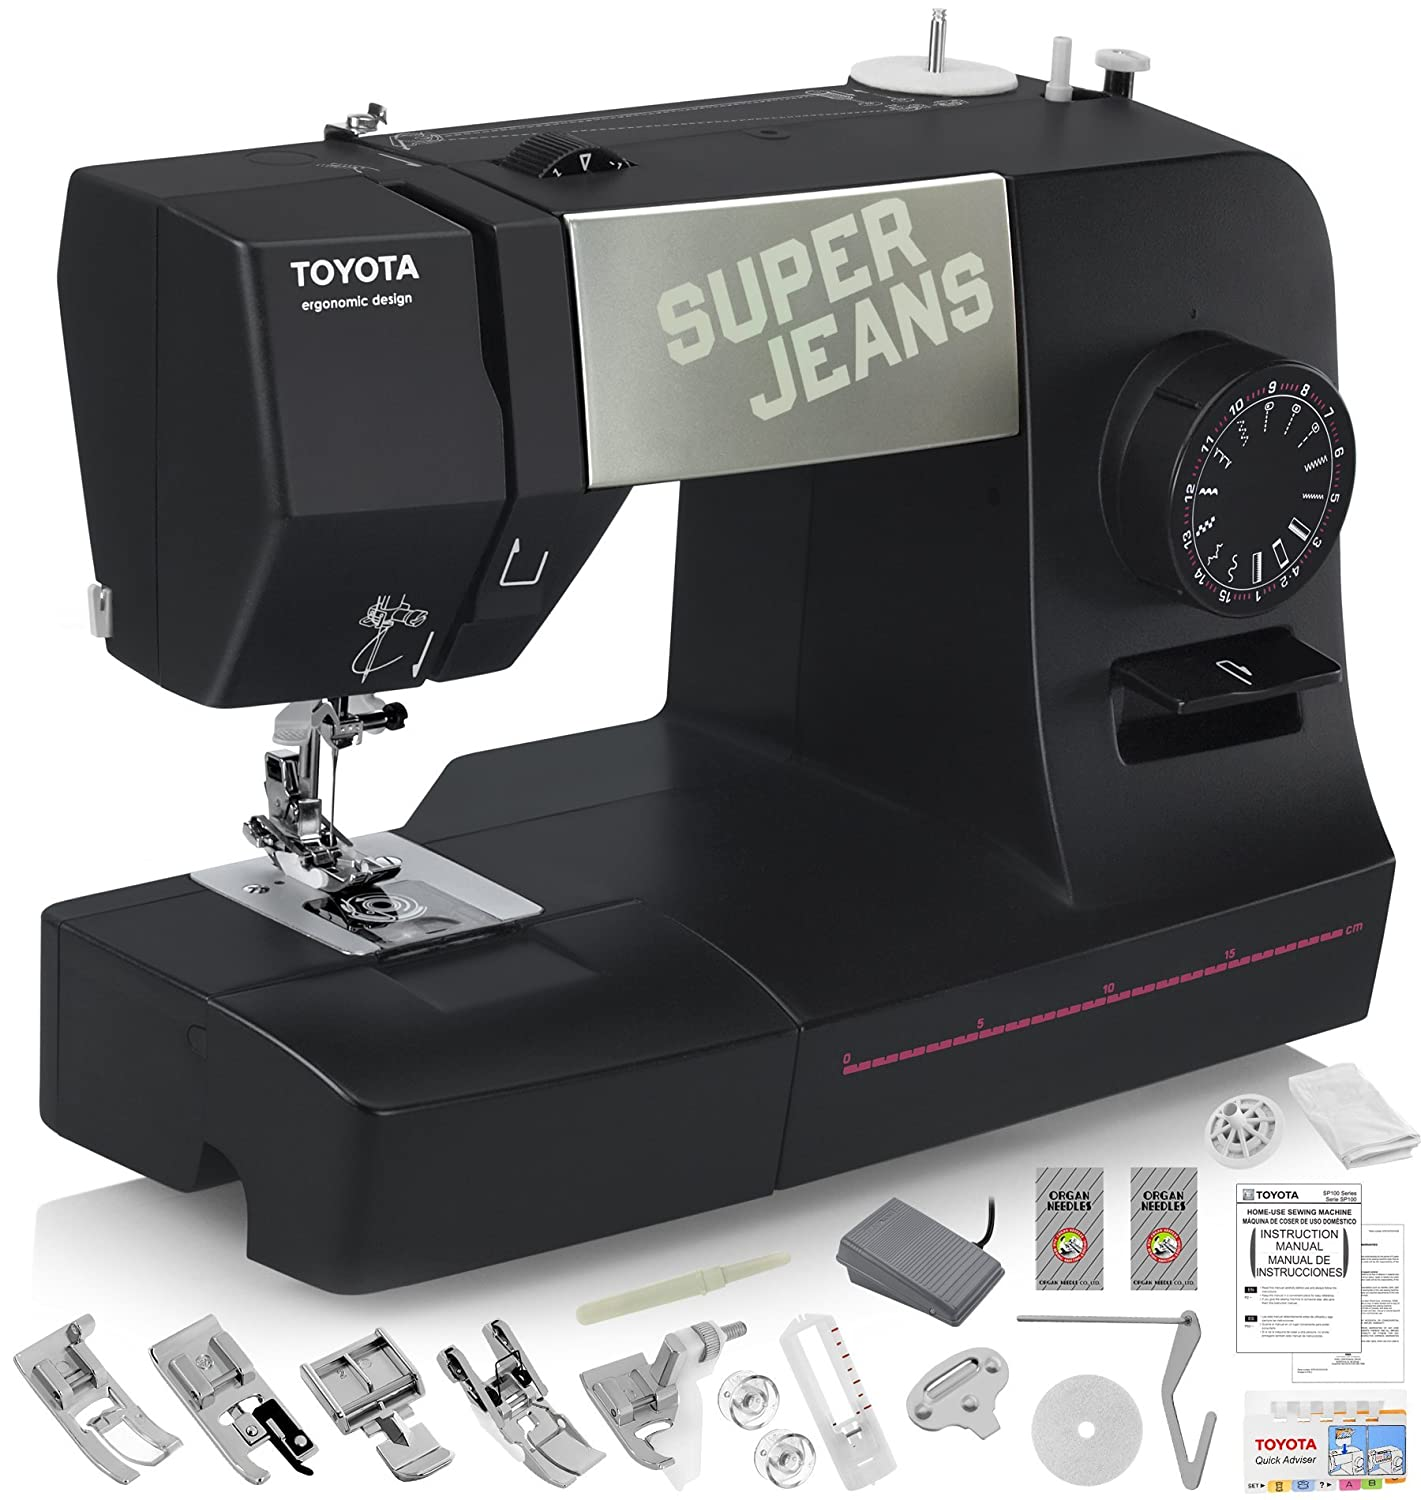 Amazon.com: TOYOTA Super Jeans J15 Sewing Machine (Glides Over 12 Layers of Denim) w/ Gliding Foot, Blind Hem Foot, Zipper Foot, Overcast Foot, ...